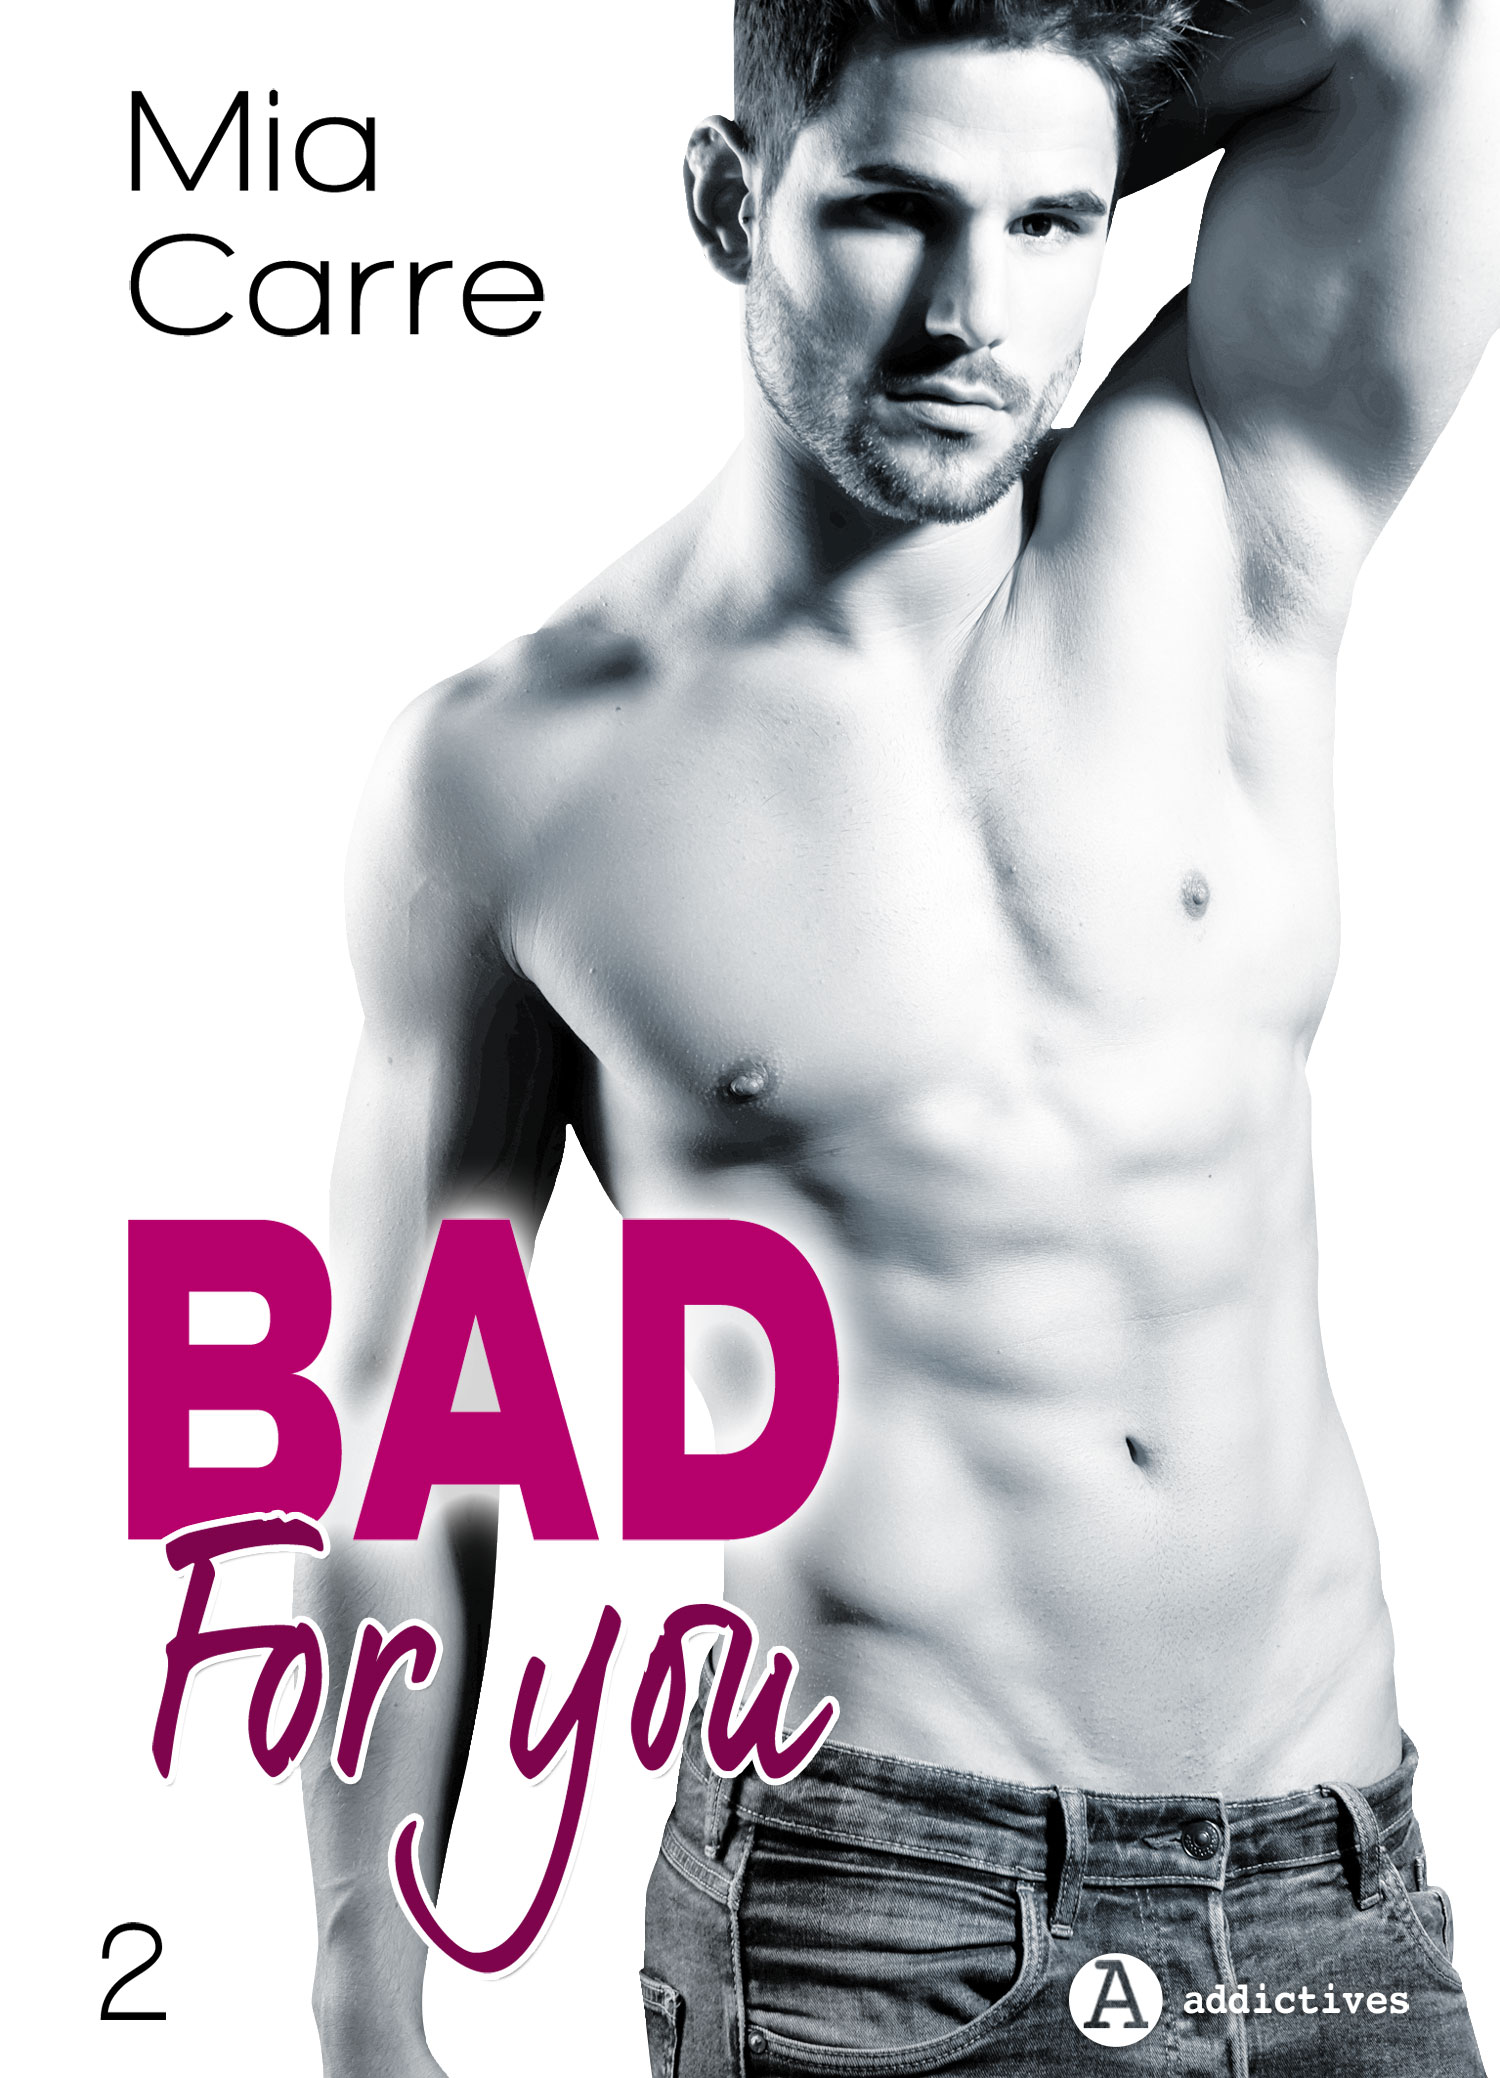 Bad for you – 2